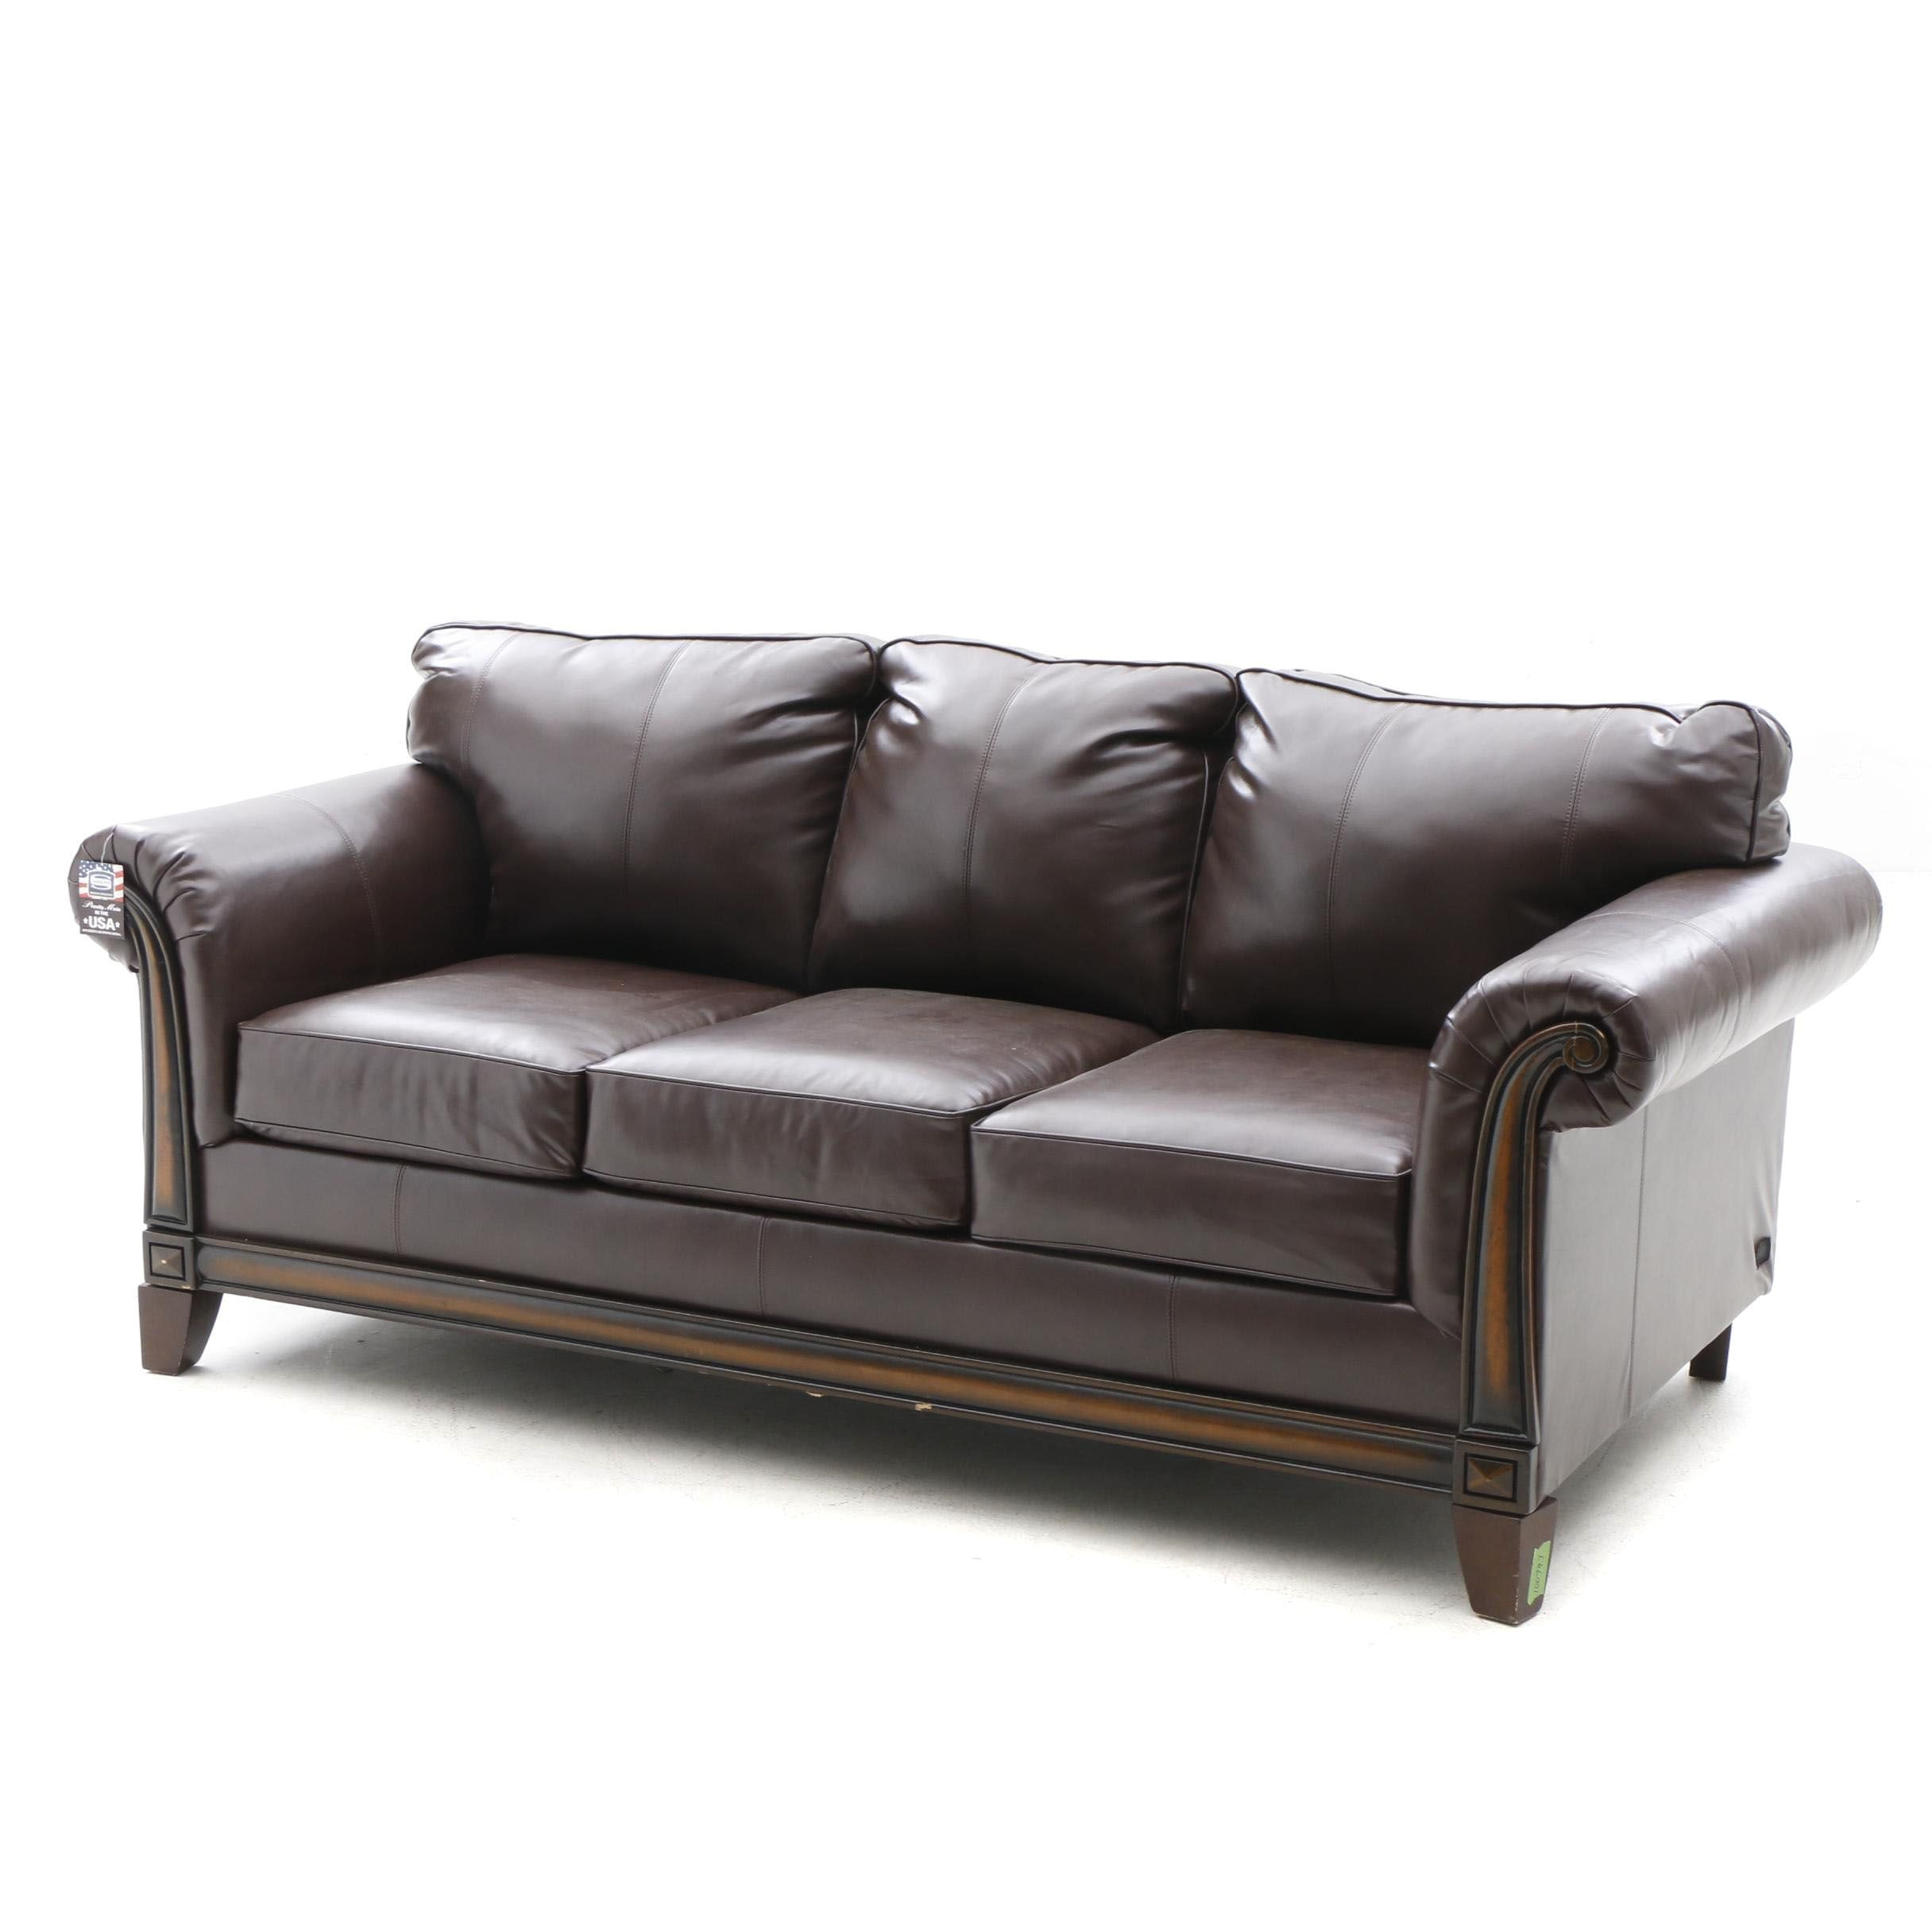 Contemporary King Sleeper Sofa by Simmons